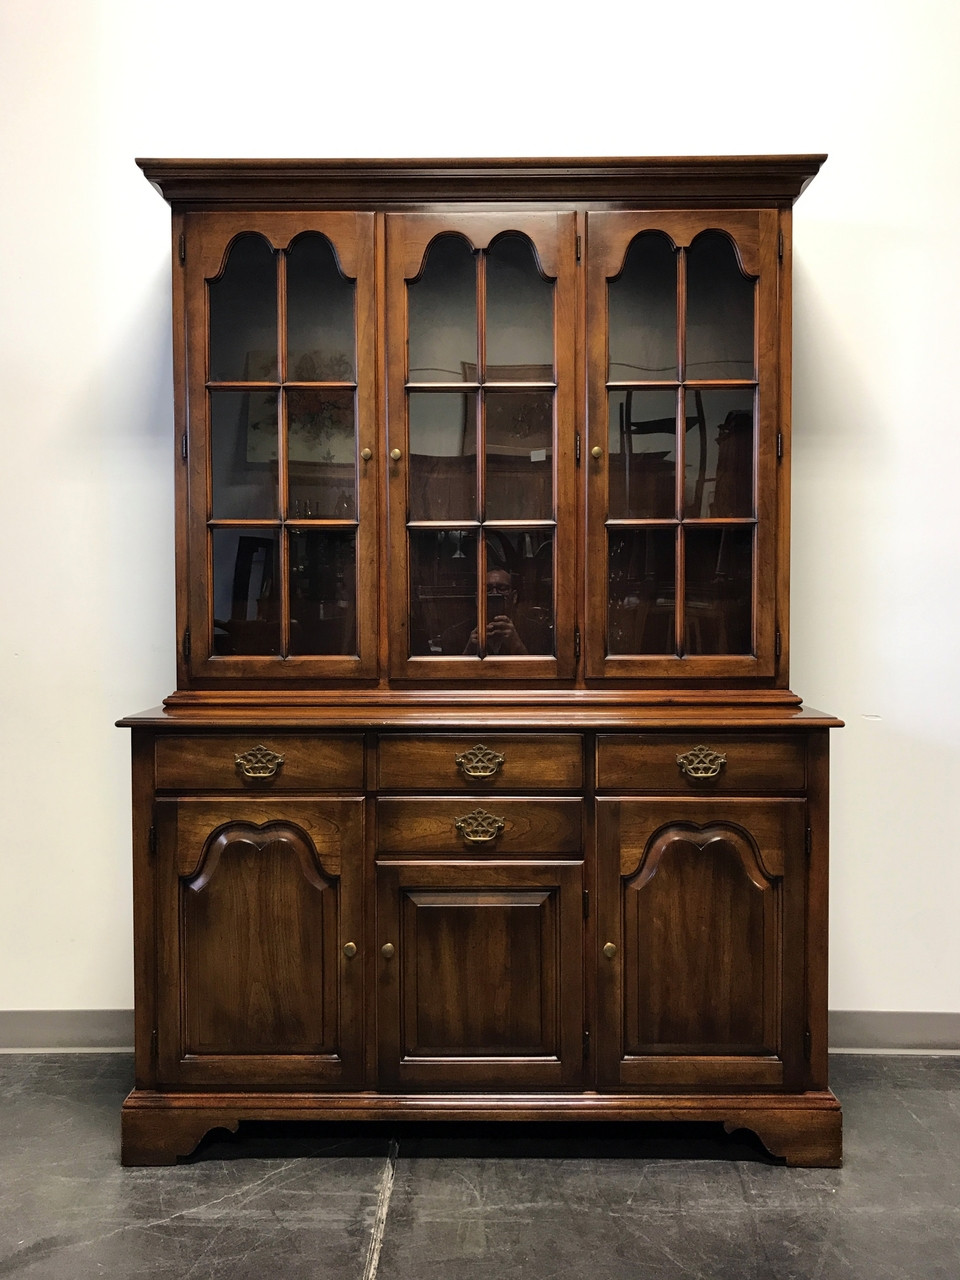 sold out statton oxford antique cherry china cabinet. Black Bedroom Furniture Sets. Home Design Ideas